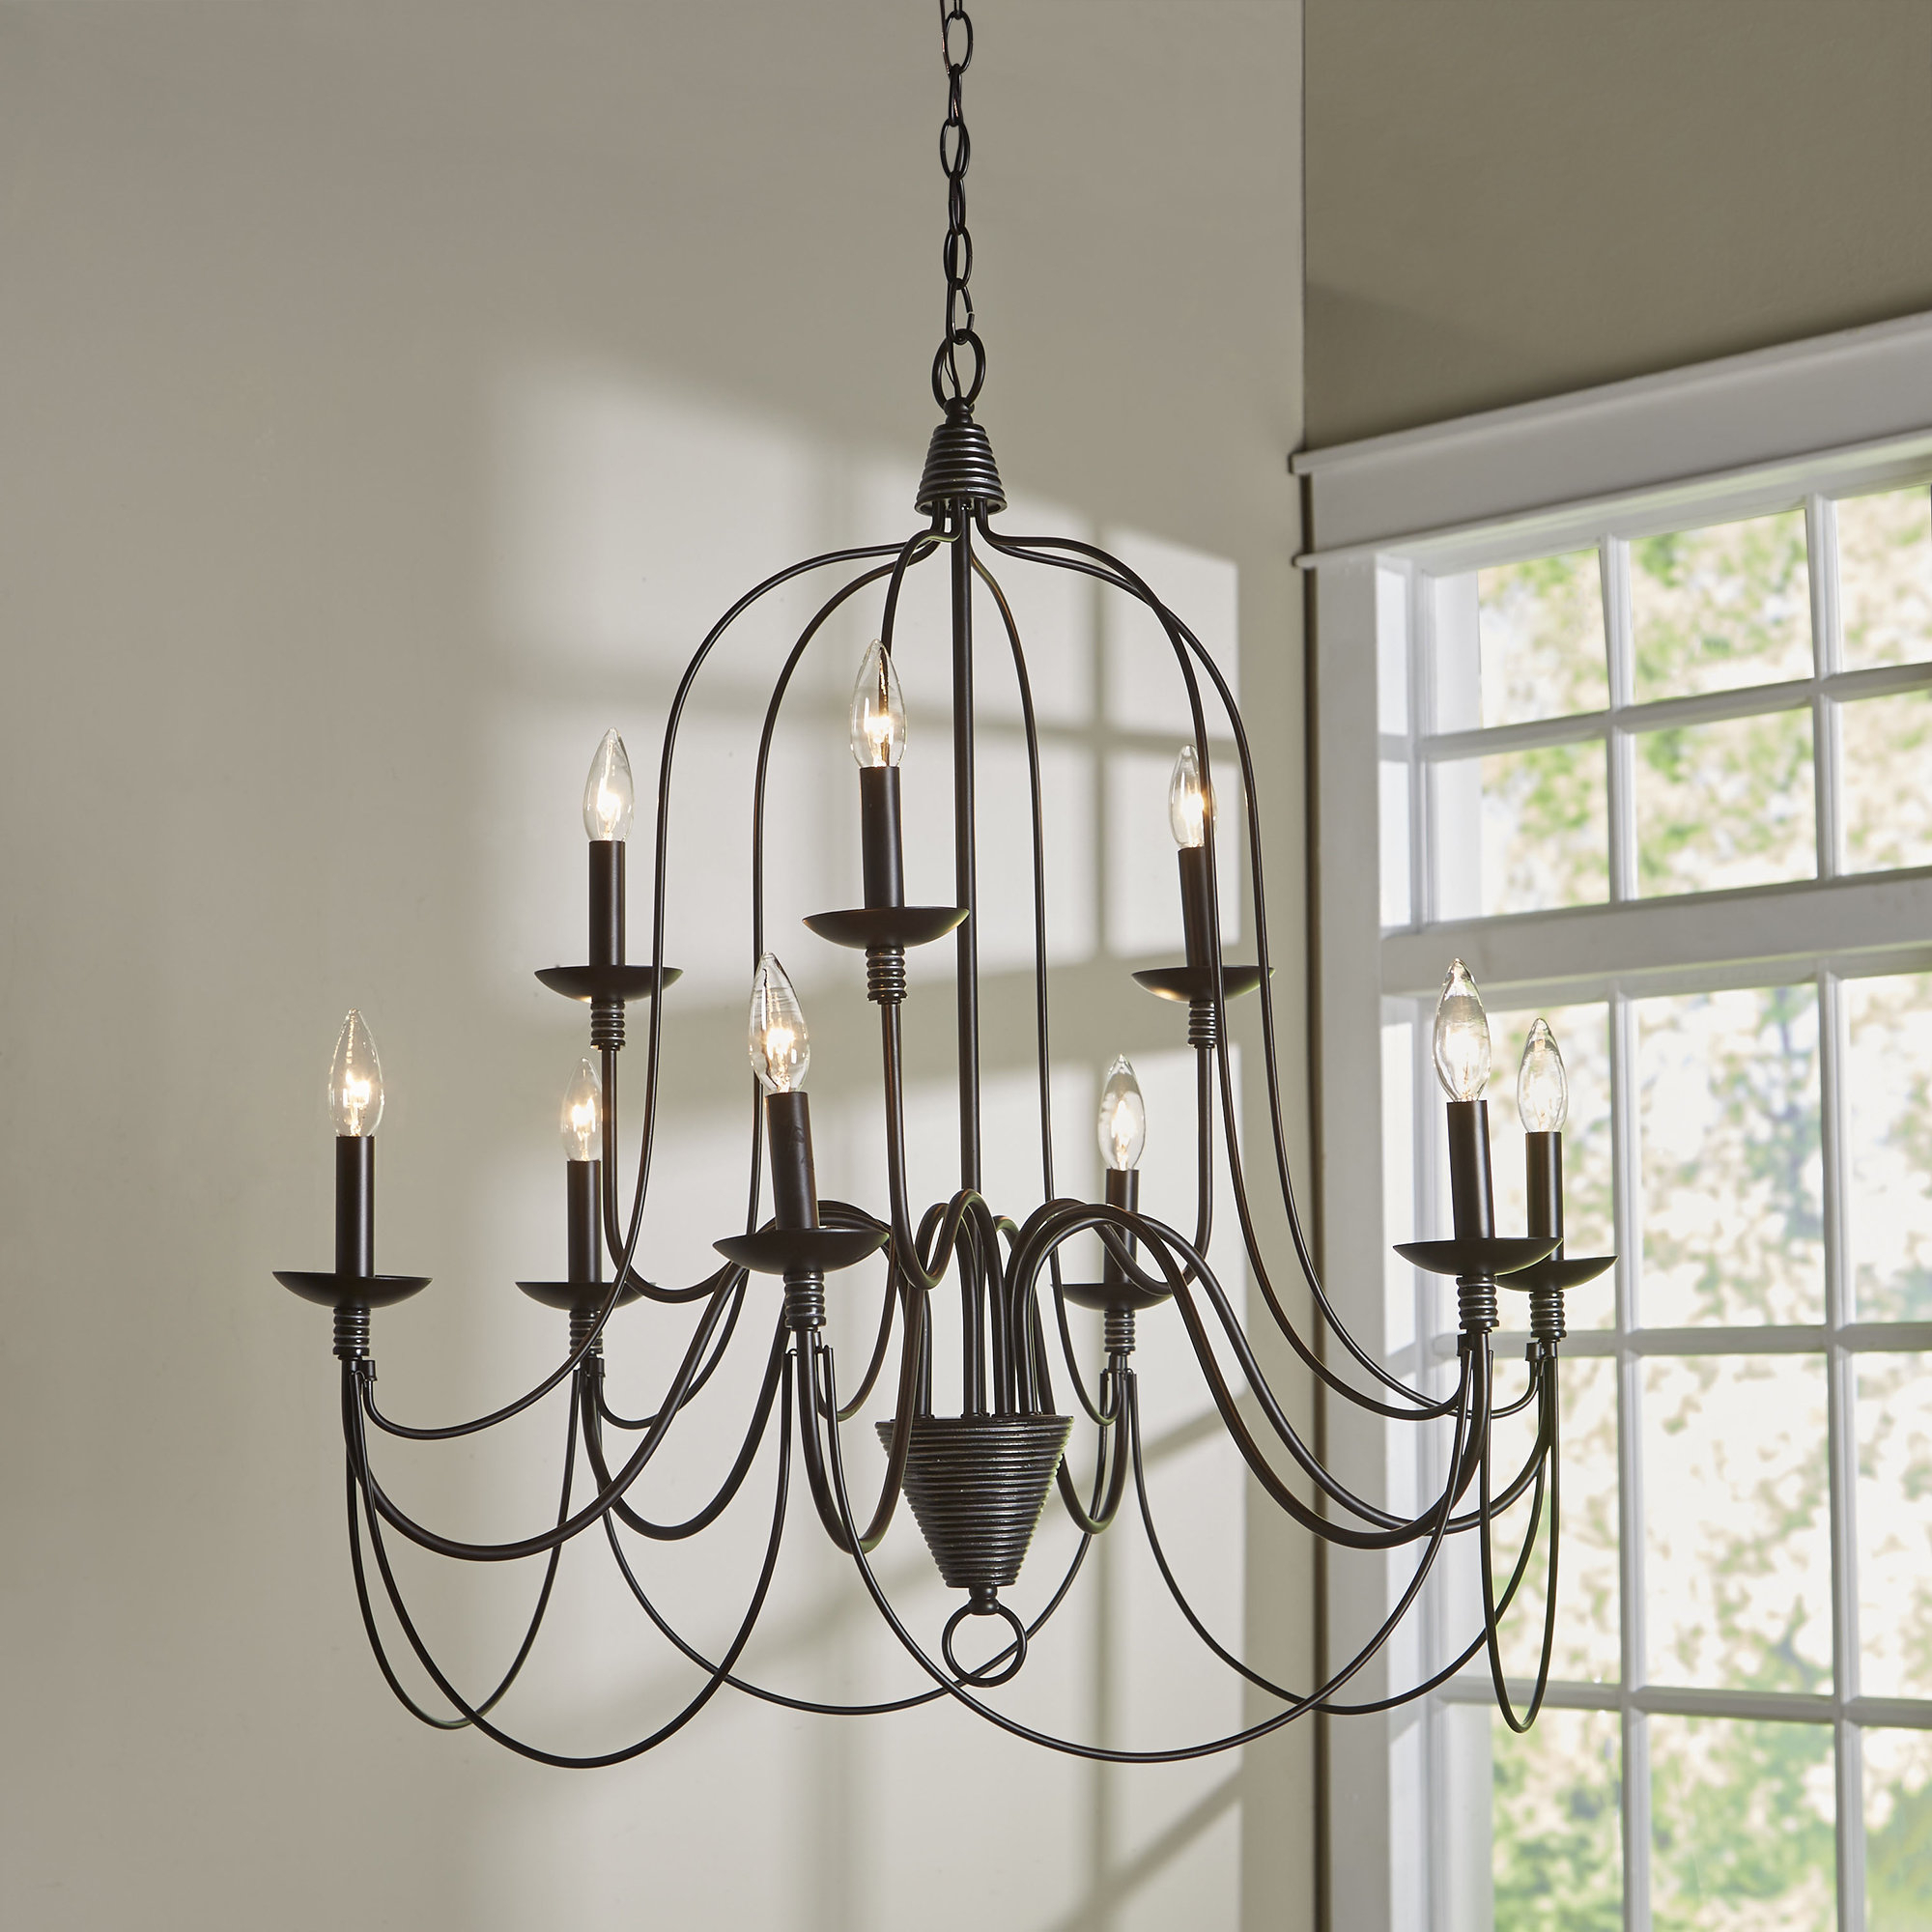 Newest Three Posts Watford 9-Light Candle Style Chandelier intended for Gaines 9-Light Candle Style Chandeliers